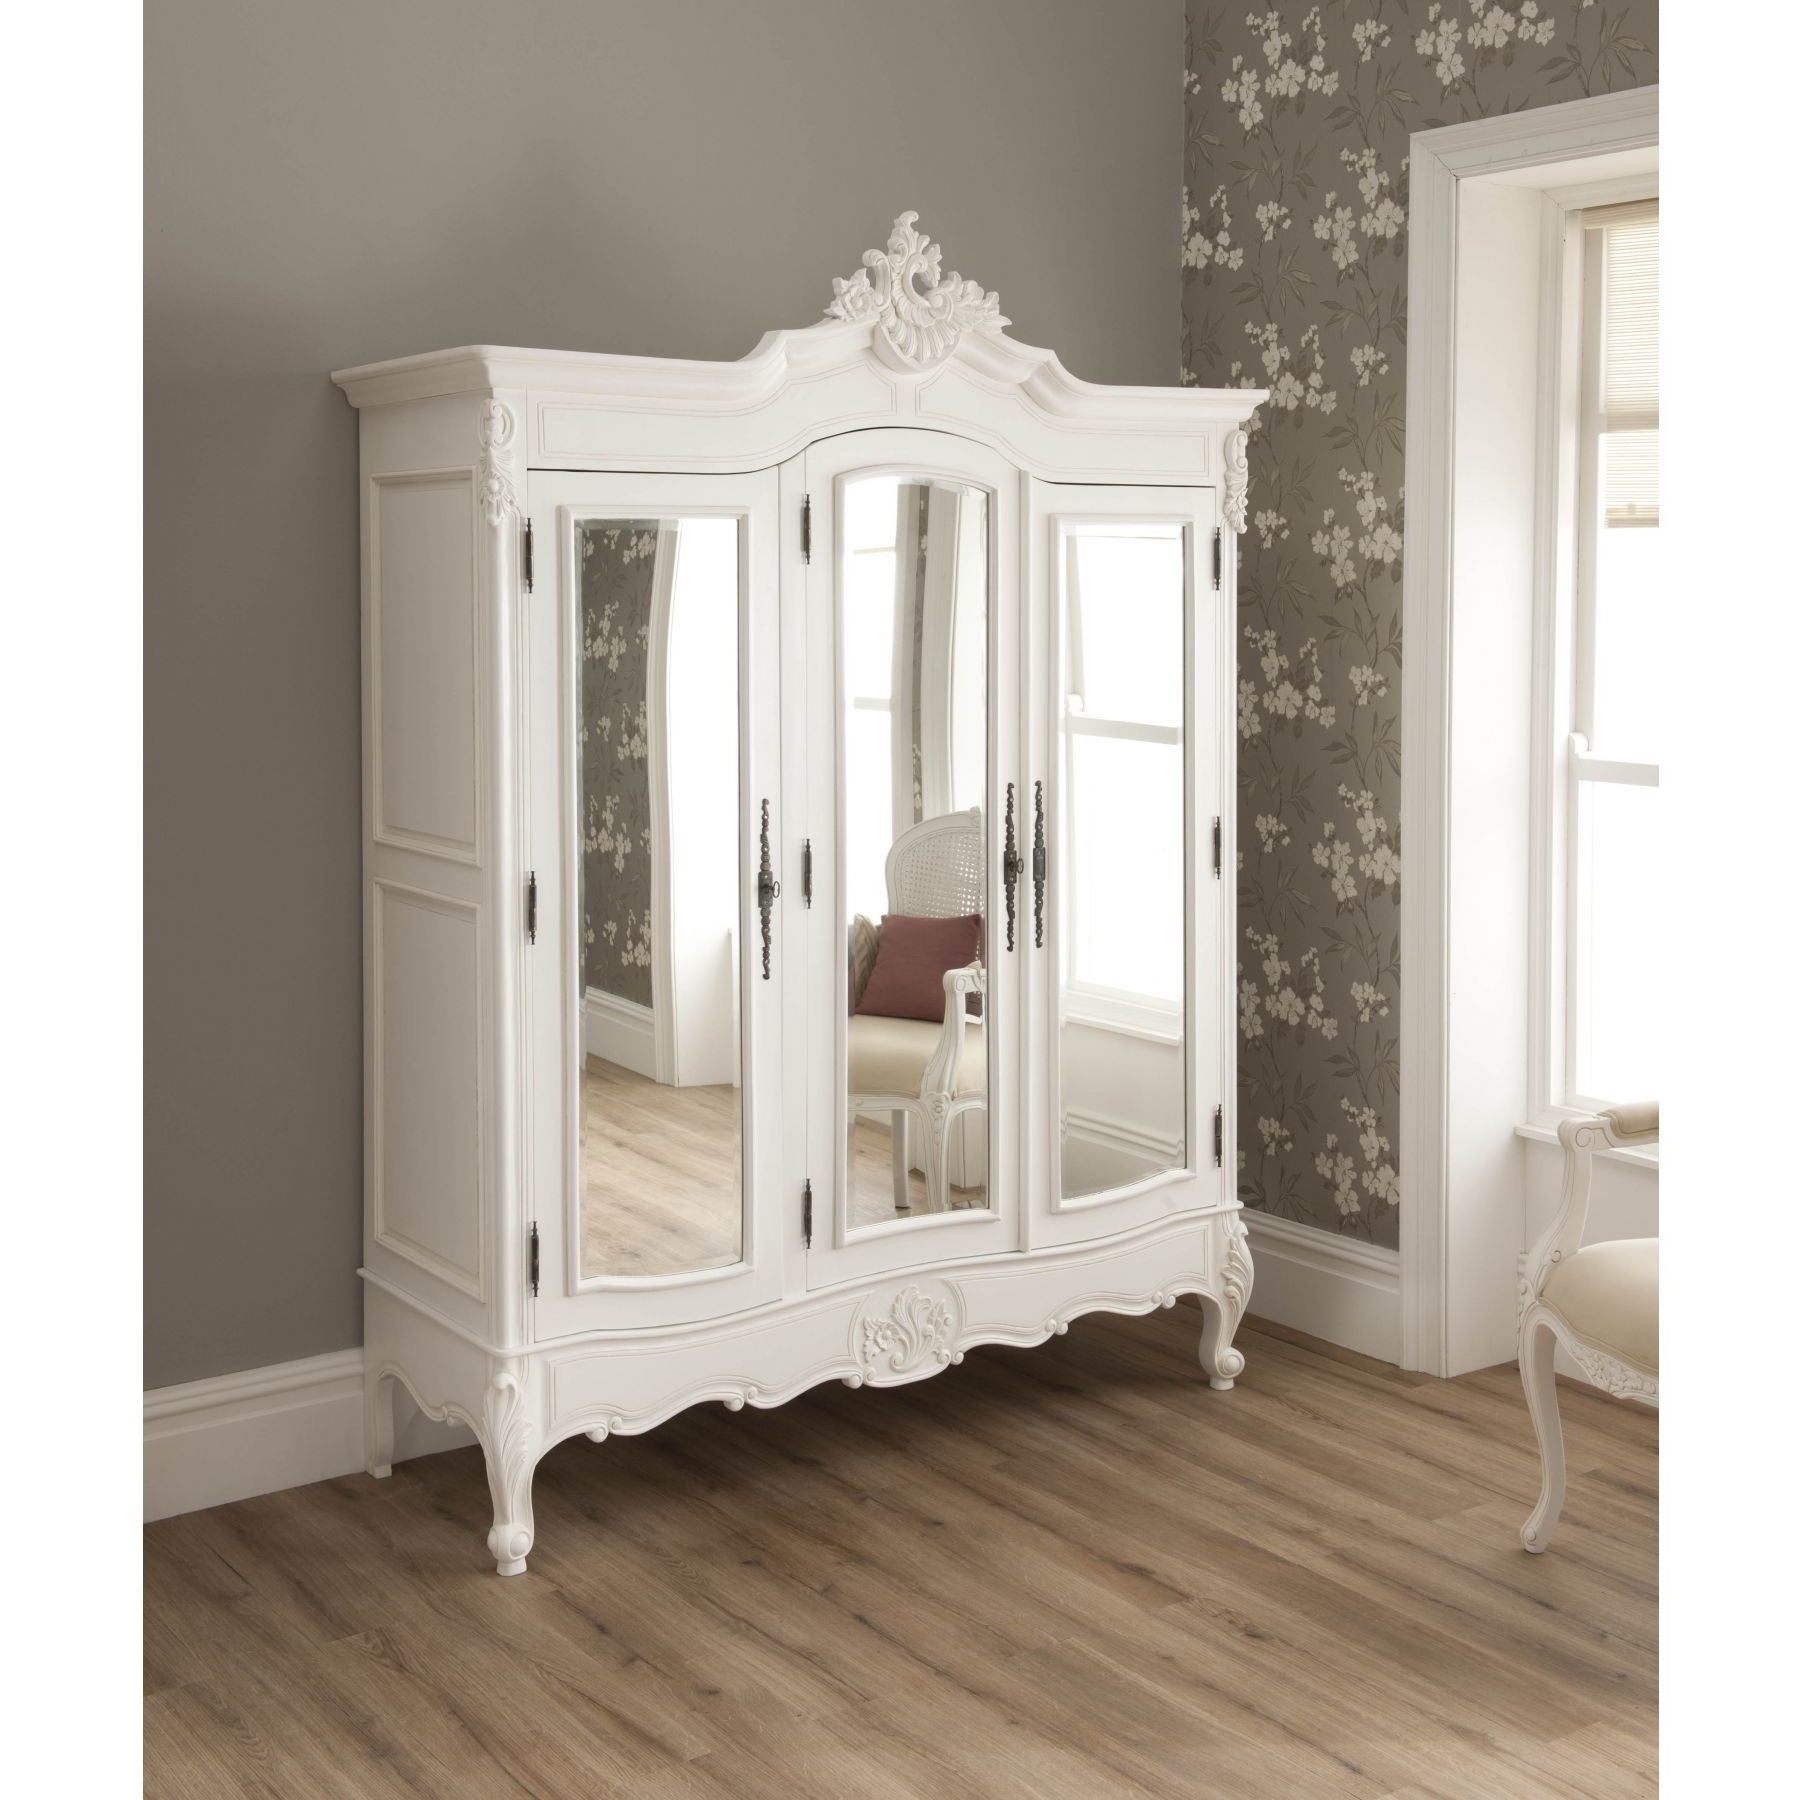 La Rochelle Shabby Chic Antique Style Wardrobe (View 4 of 15)